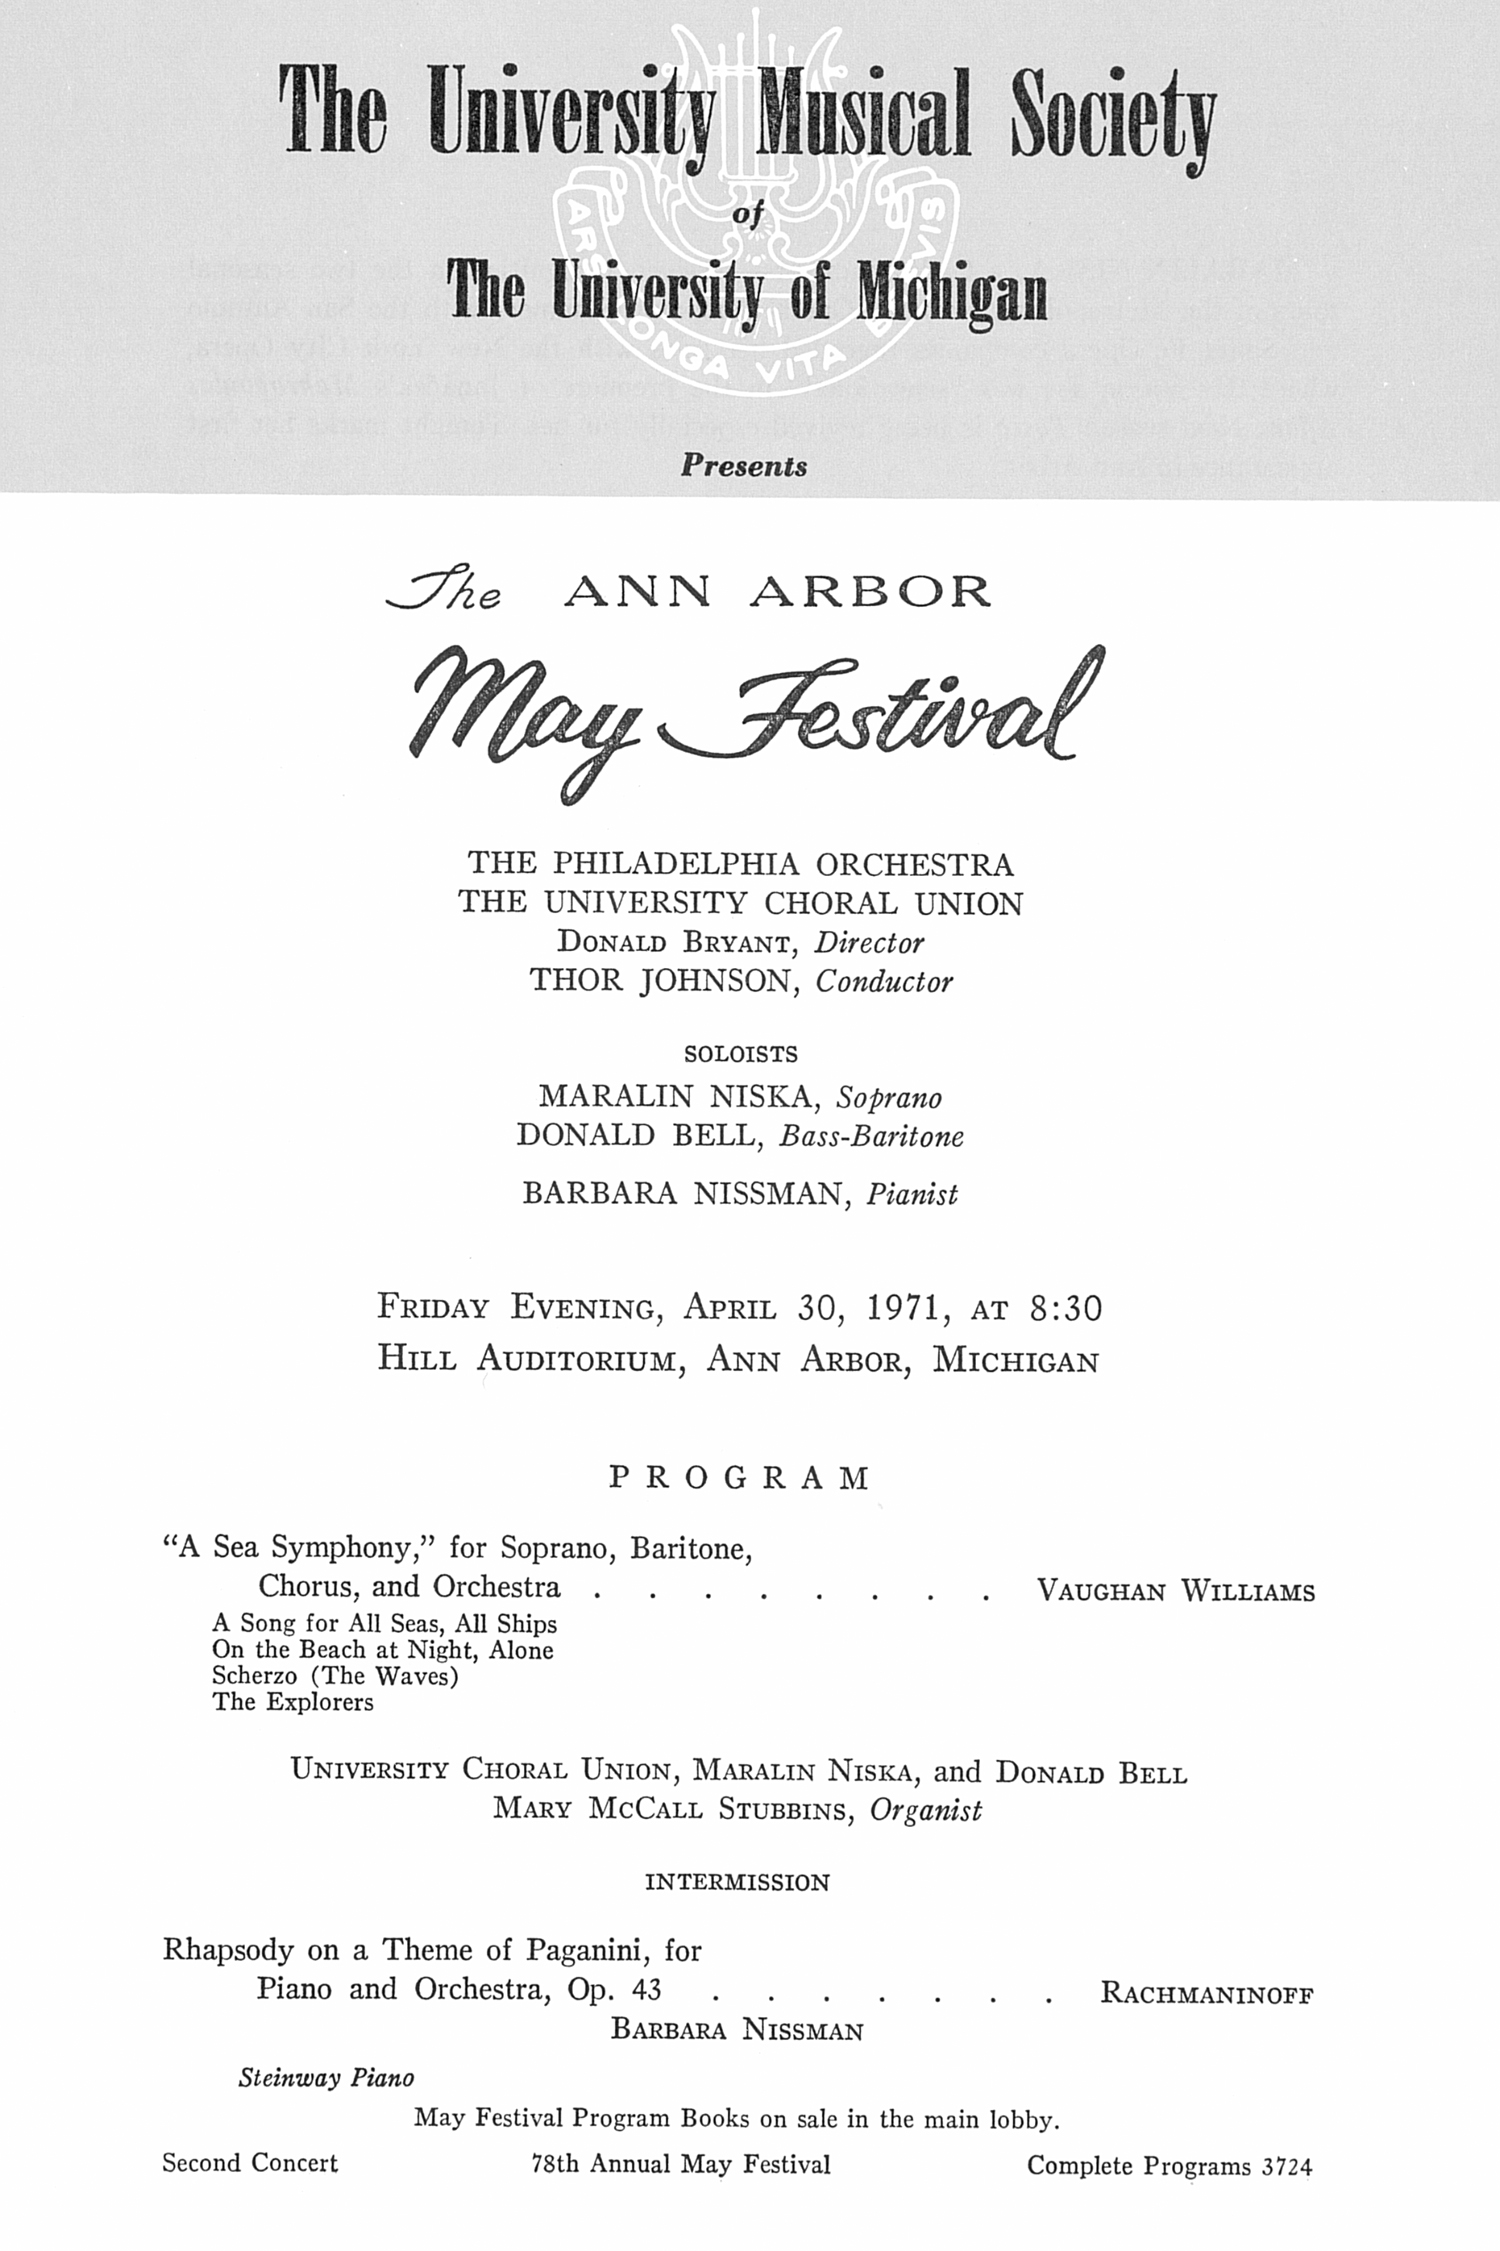 UMS Concert Program, April 30, 1971: The Ann Arbor May Festival -- The Philadelphia Orchestra image